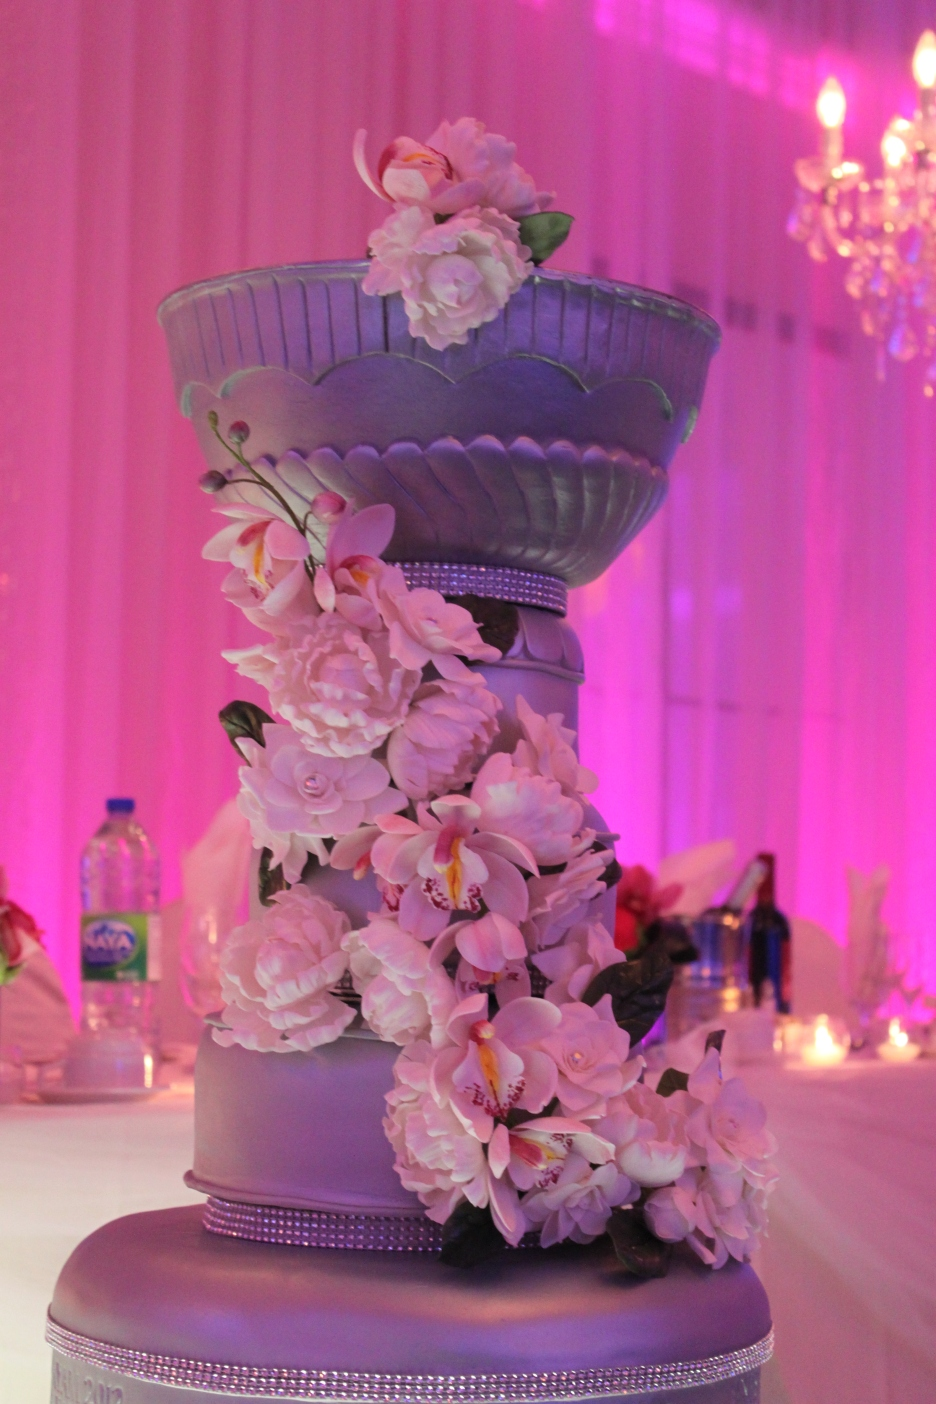 Cake Portion of the Stanley Cup Wedding Cake